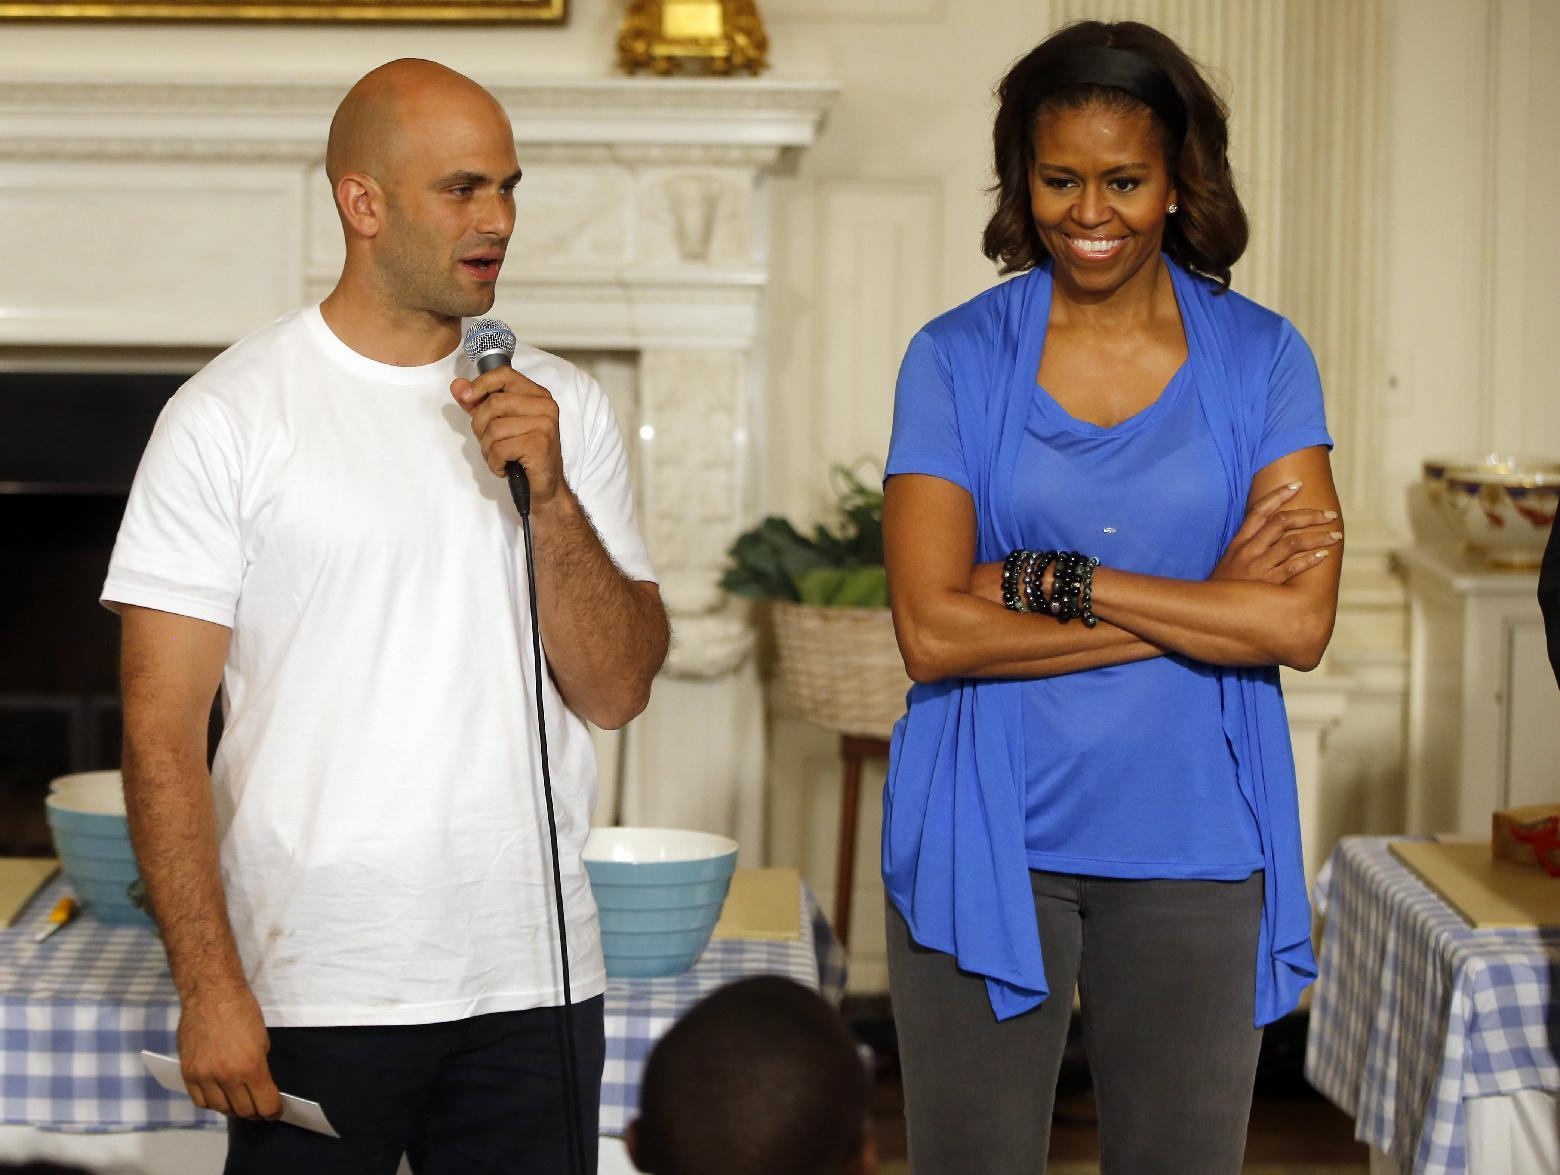 Obama personal chef to hang up apron after 6 years